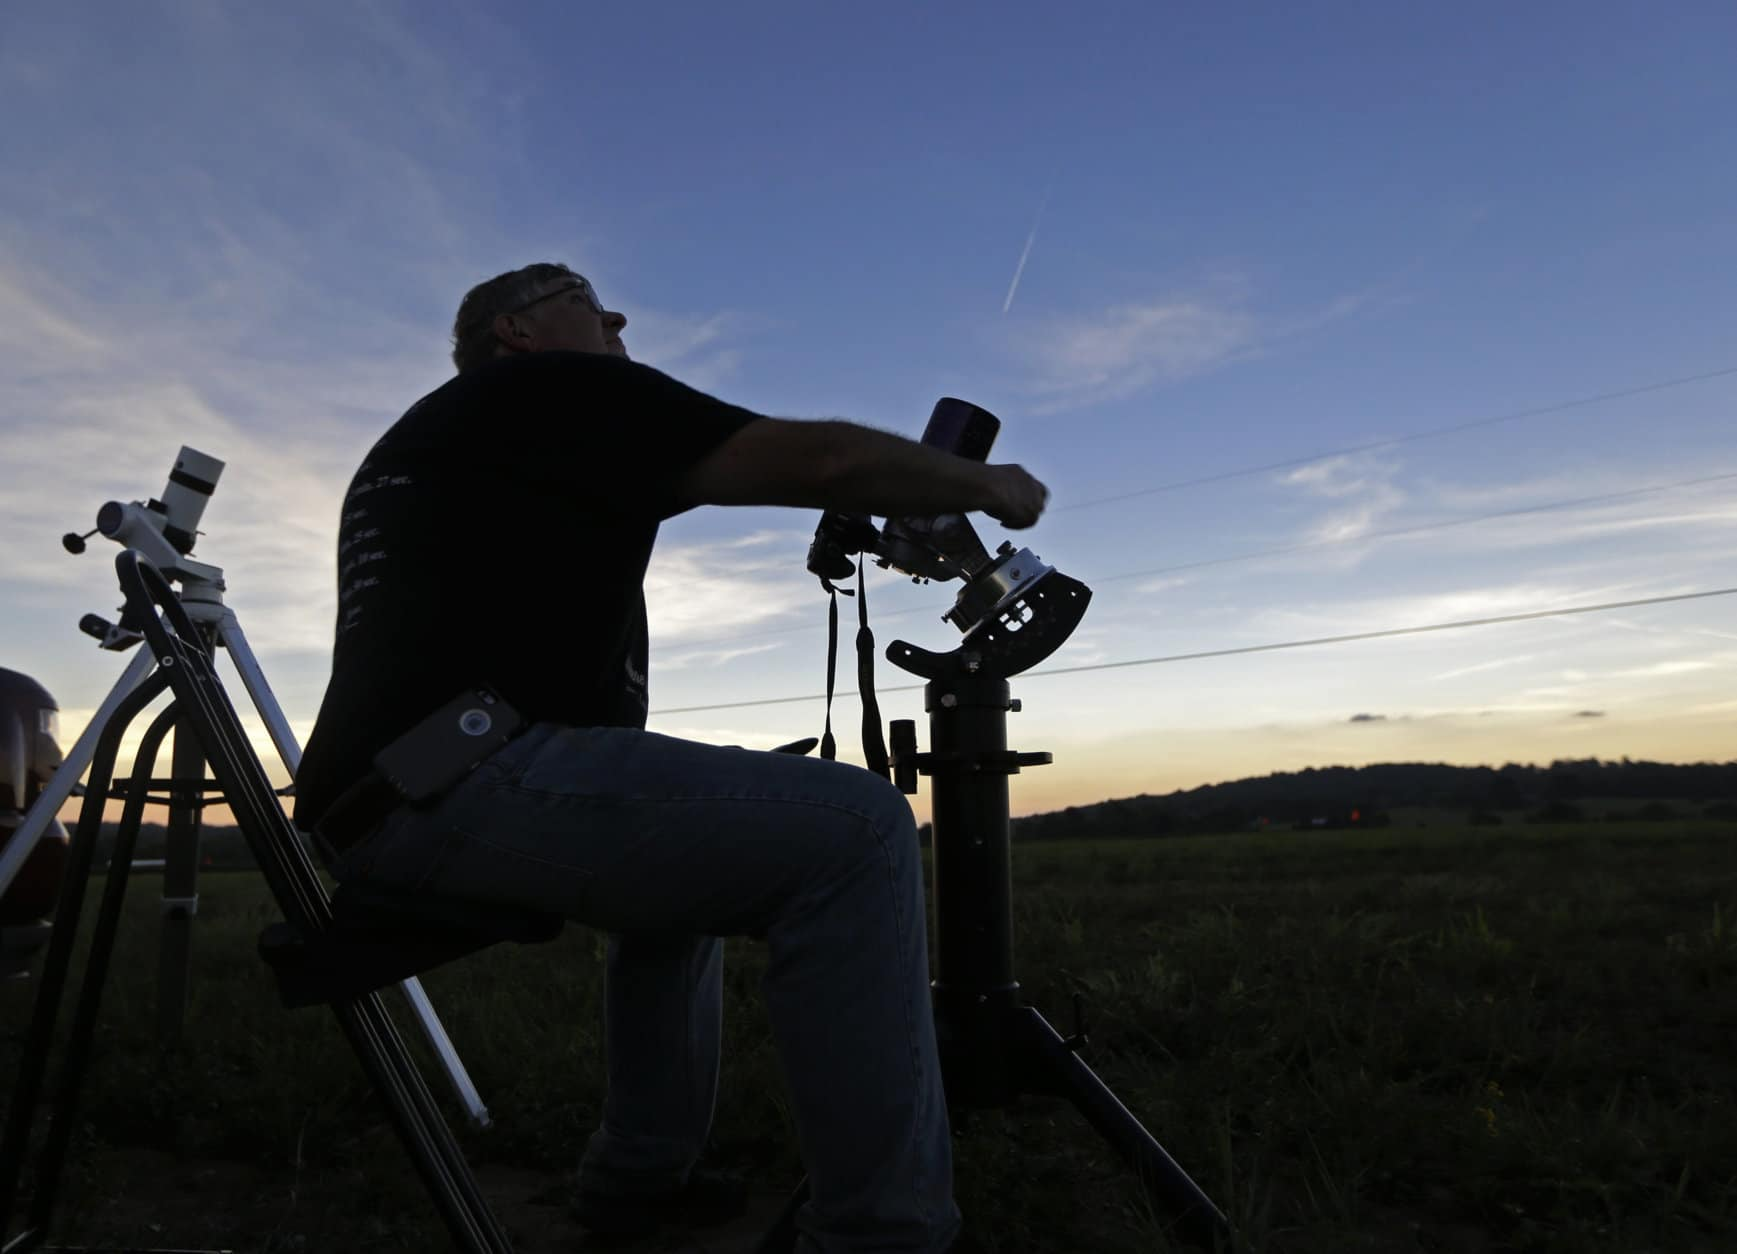 Mark Renz, of Rochester, N.Y, adjusts one of his telescopes during the period of total coverage during the solar eclipse Monday, Aug. 21, 2017, on the Orchard Dale historical farm near Hopkinsville, Ky. The location, which is in the path of totality, is also at the point of greatest intensity. (AP Photo/Mark Humphrey)